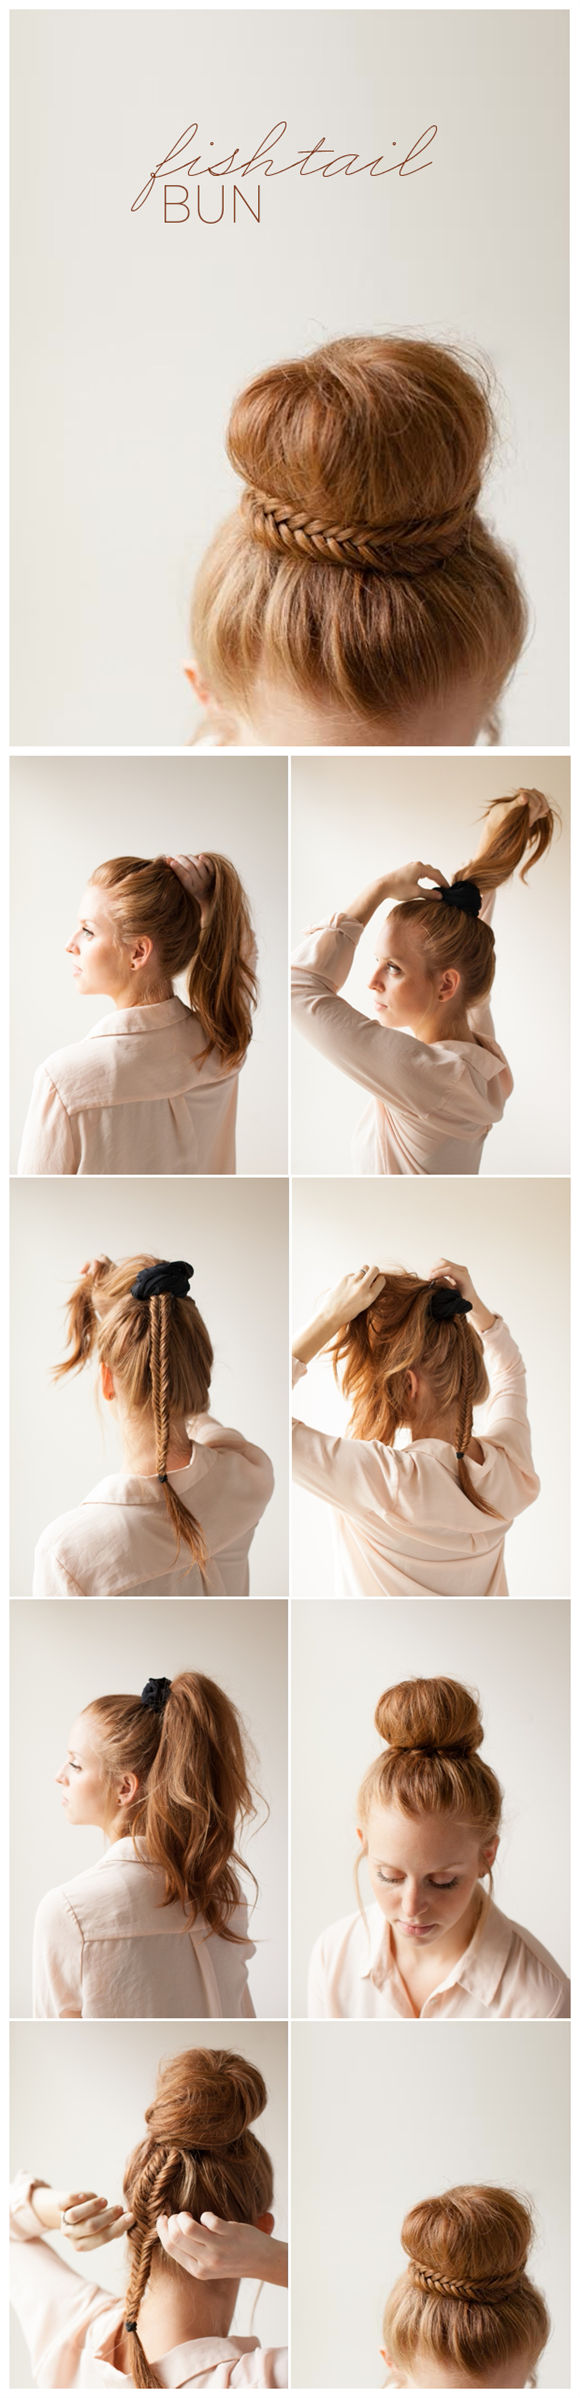 10-fishtail-bun-tutorial2